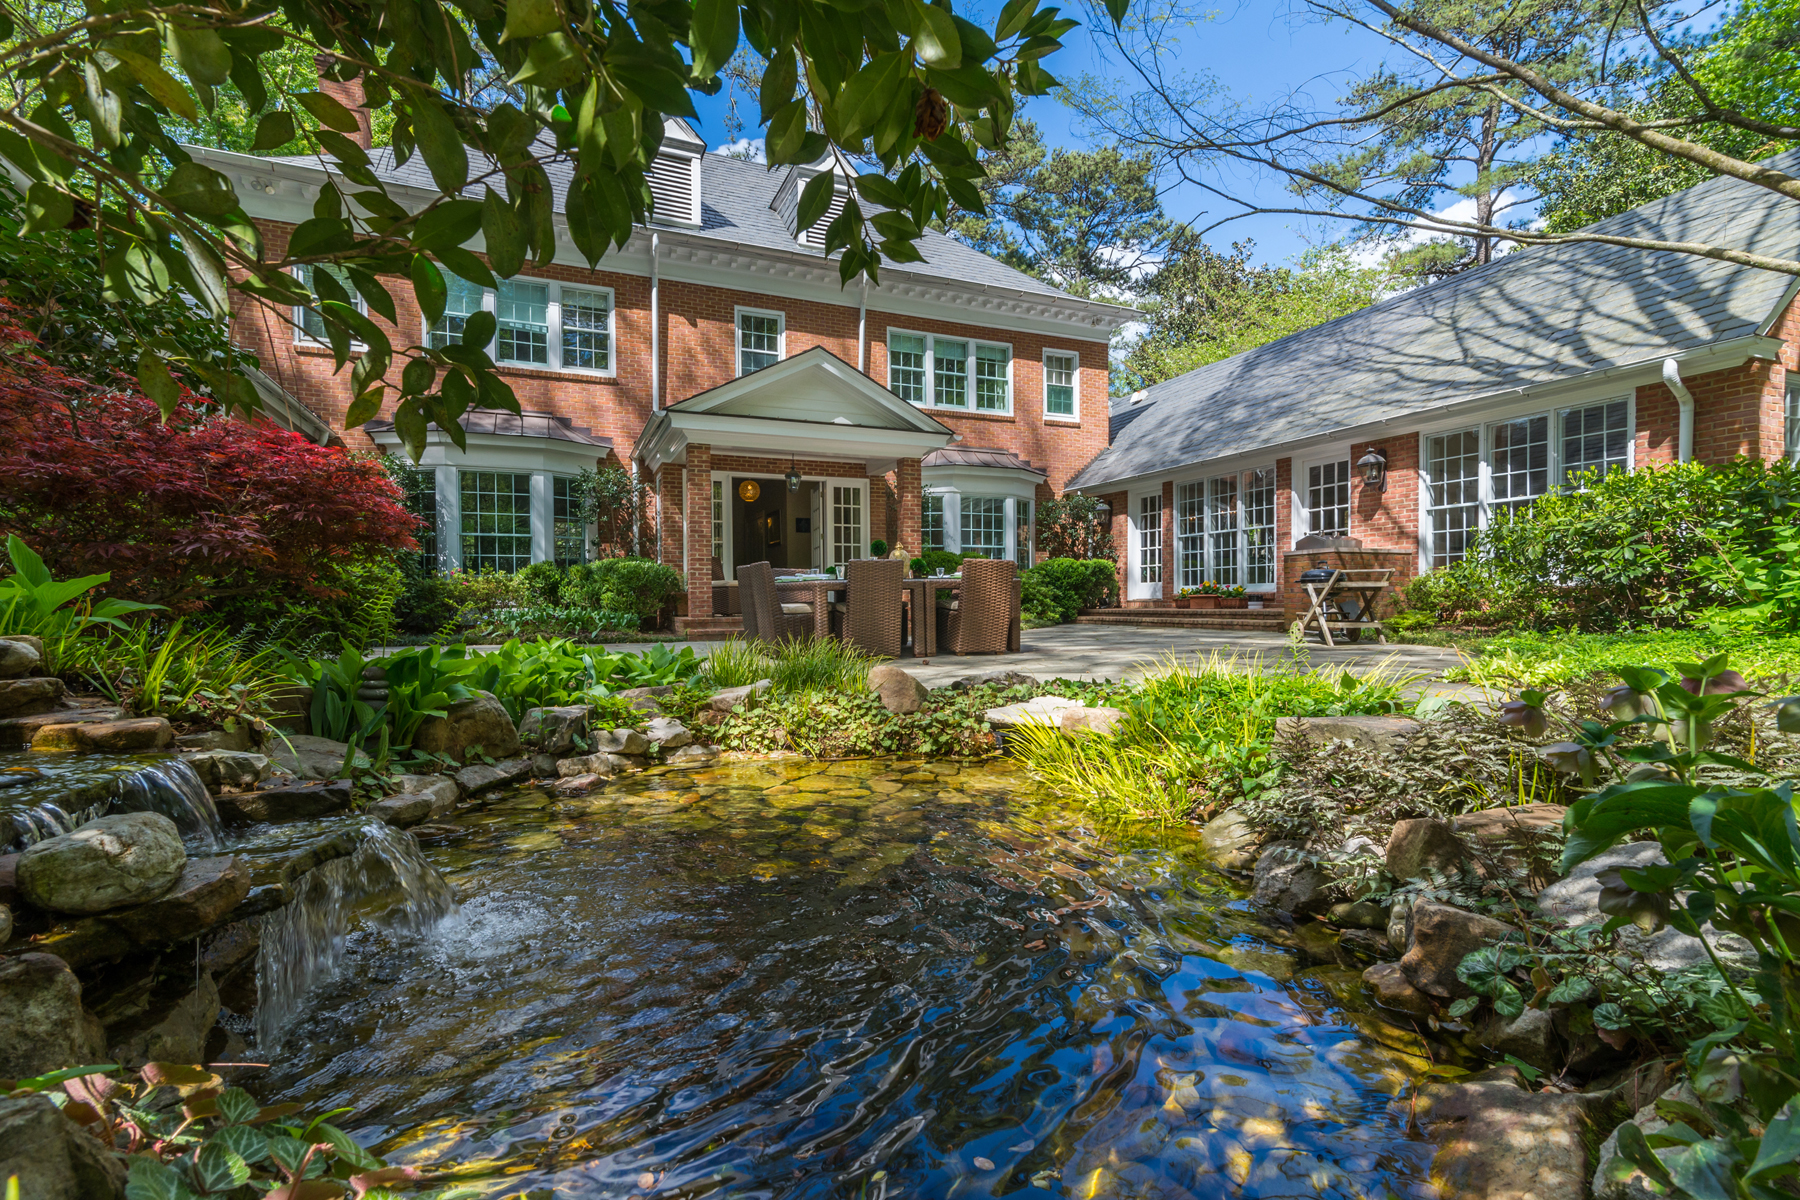 一戸建て のために 売買 アット A Private And Unique Oasis In The Heart Of Buckhead 650 W Paces Ferry Road NW Buckhead, Atlanta, ジョージア, 30327 アメリカ合衆国